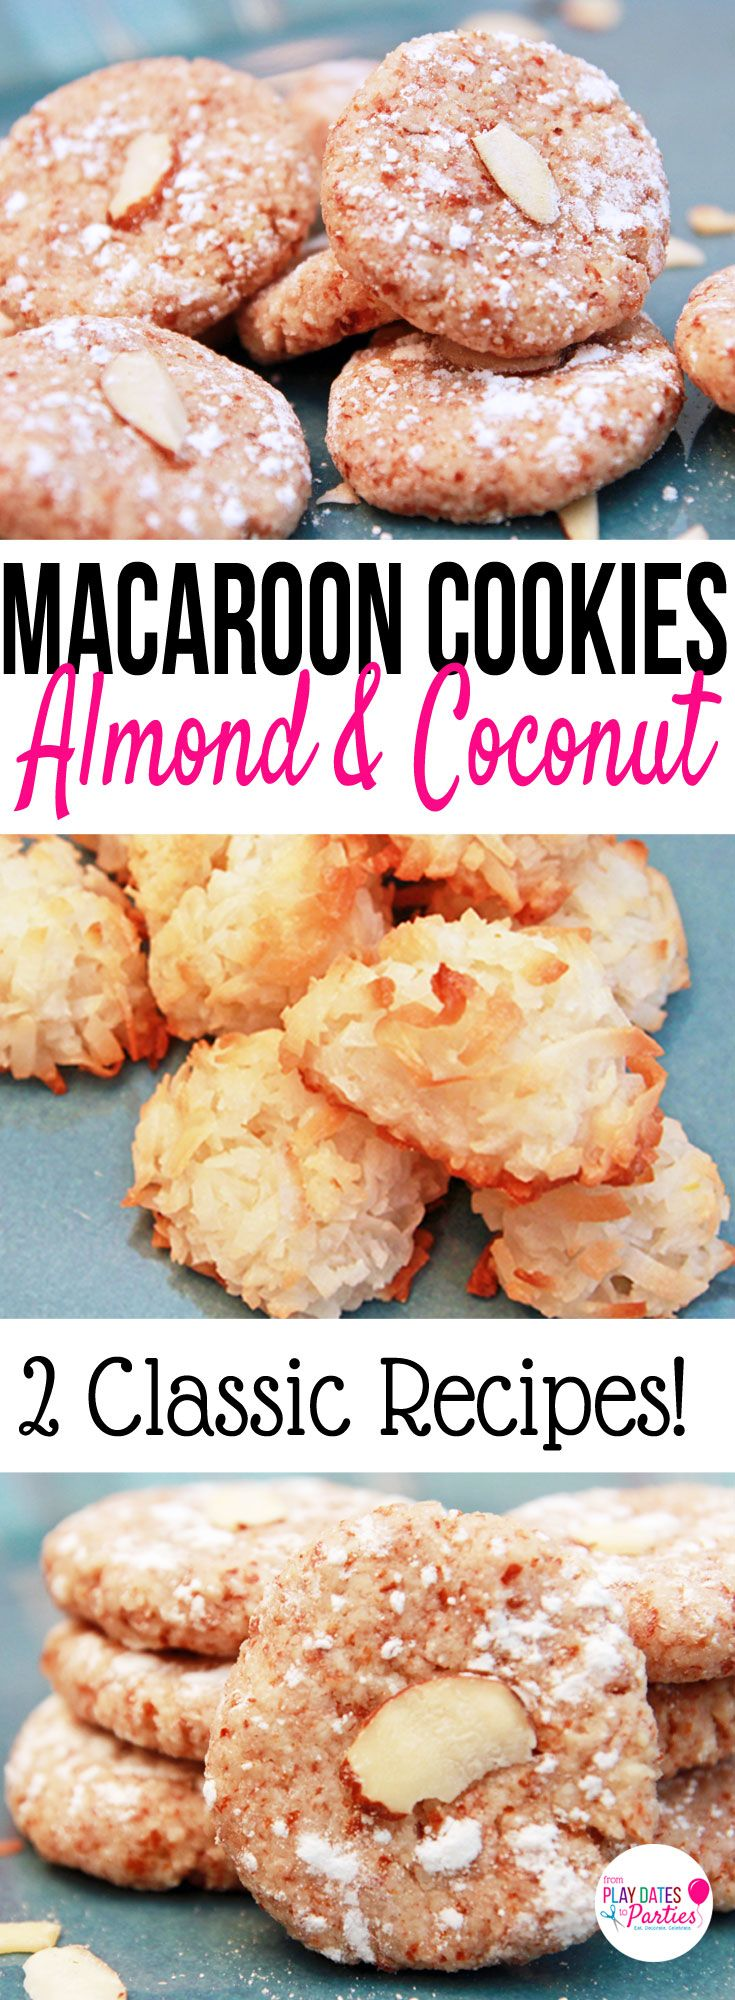 Did you know that macaroons were originally made with almonds instead of coconut? Take a look at the comparison of a coconut macaroons recipe vs an almond macaroons recipe. Which do you think was better? https://playdatesparties.com/12-days-of-christmas-cookies-macaroons/